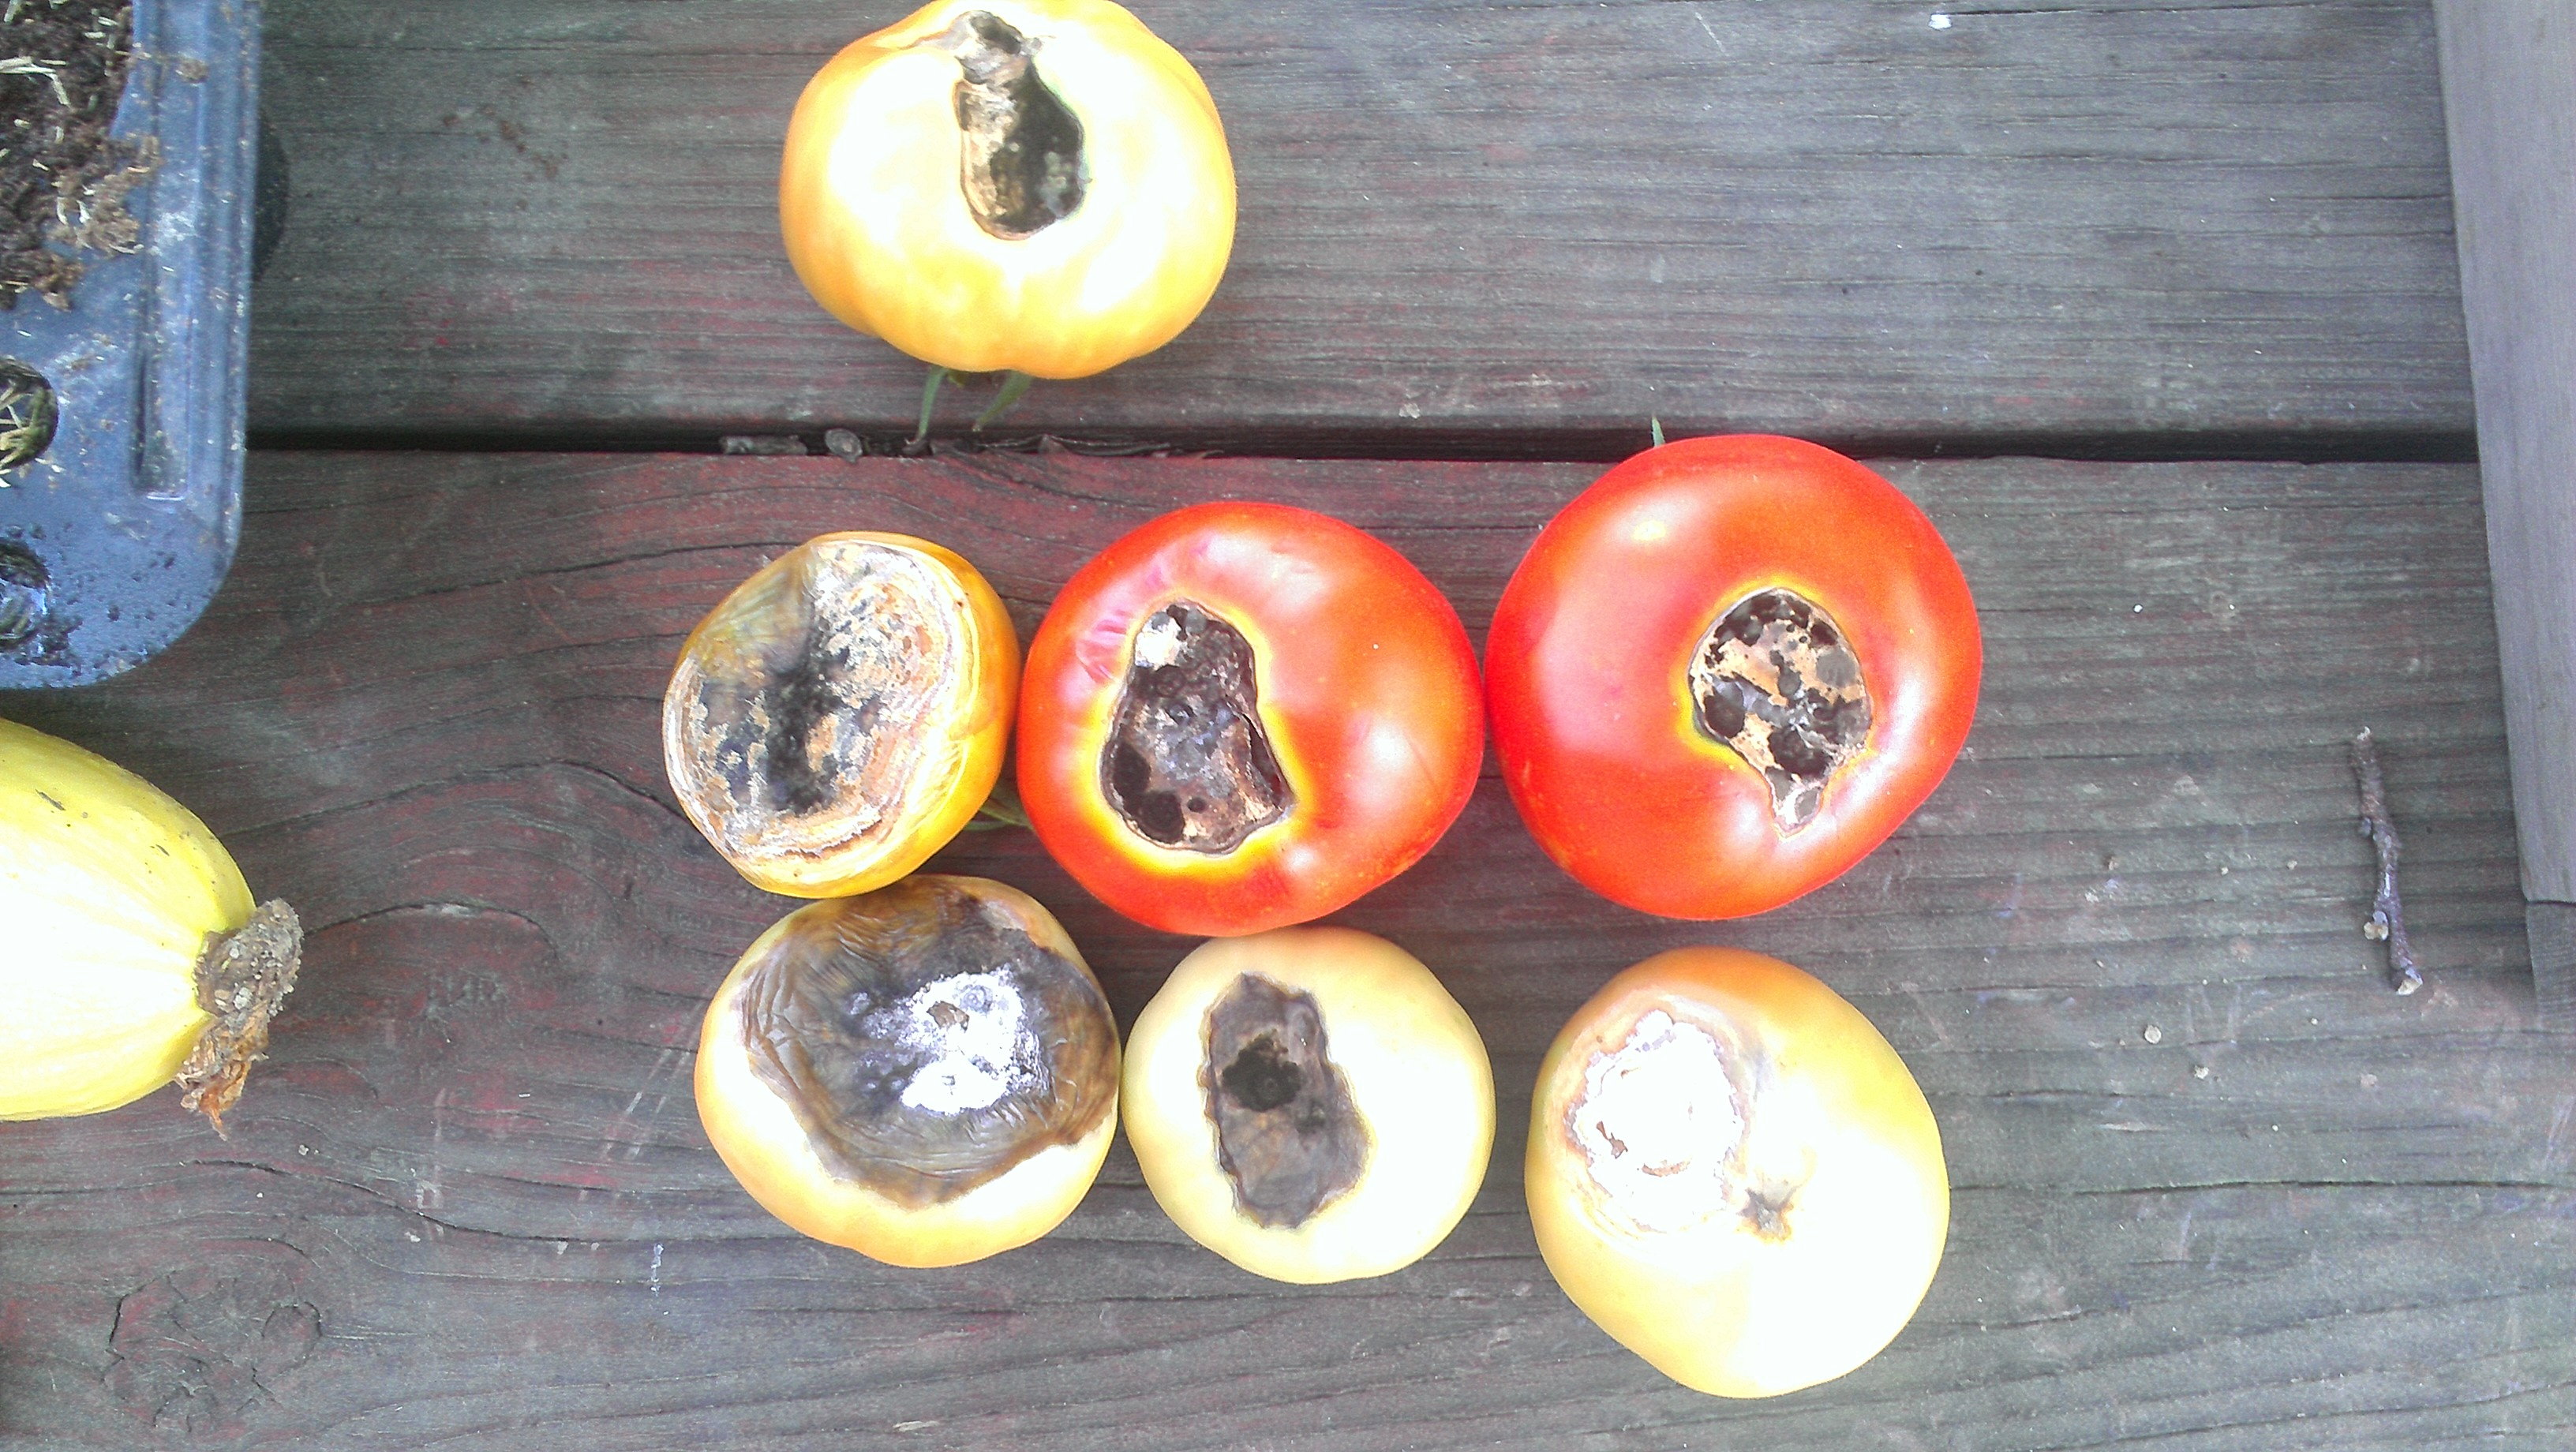 Gardeners Concerns About Tomatoes